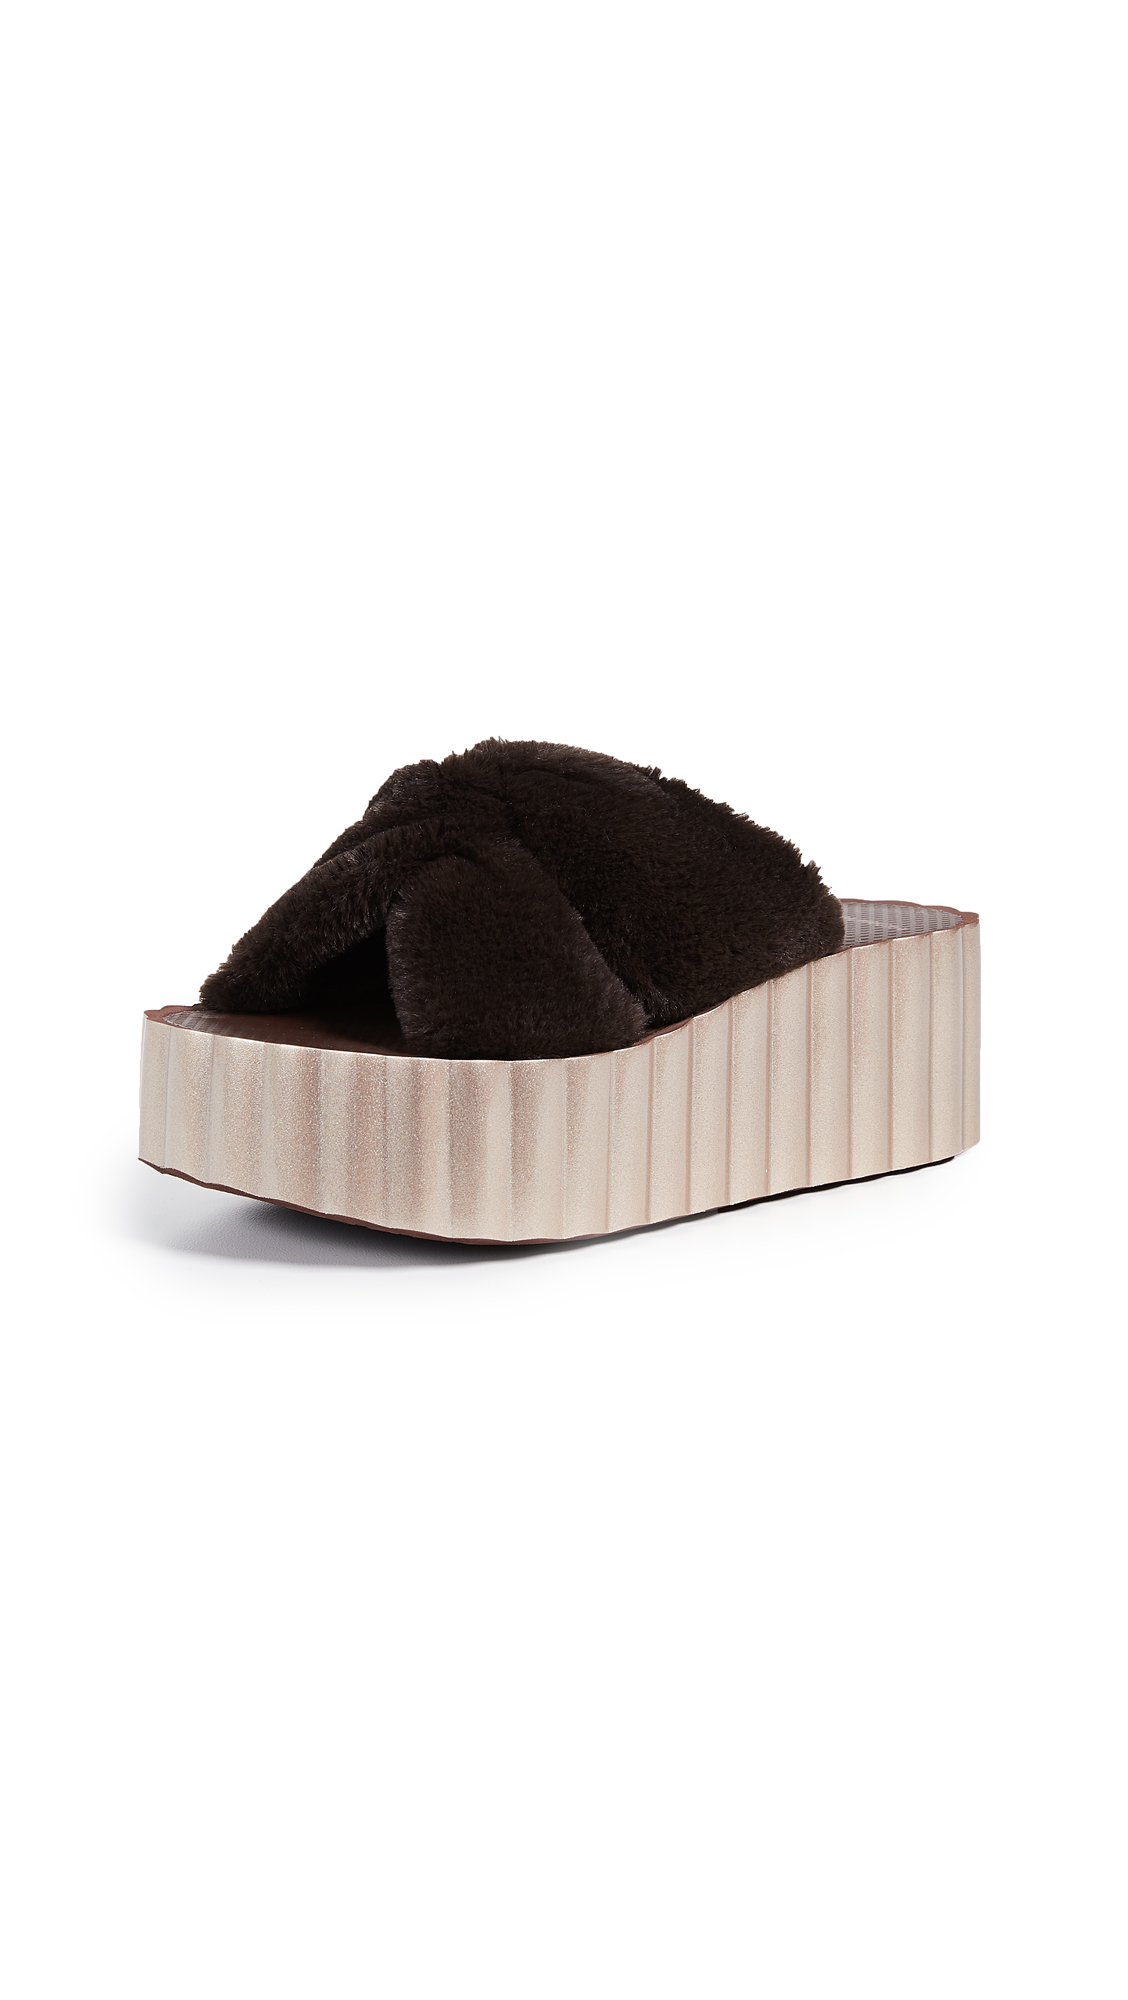 Tory Burch Faux Fur Scallop Slide Sandals - Chocolate